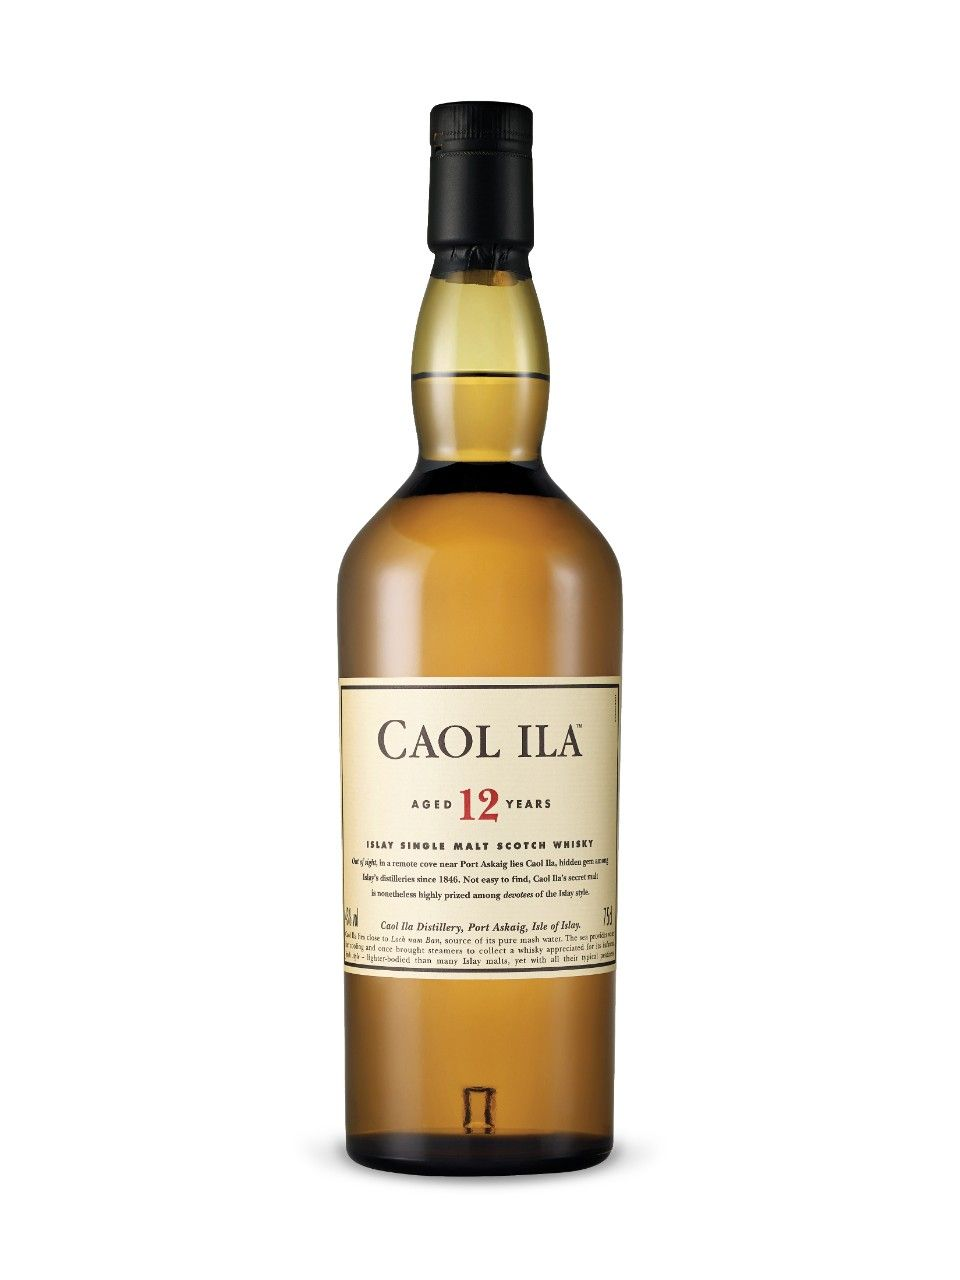 '12 years old' Single Malt Scotch Whisky - Caol Ila